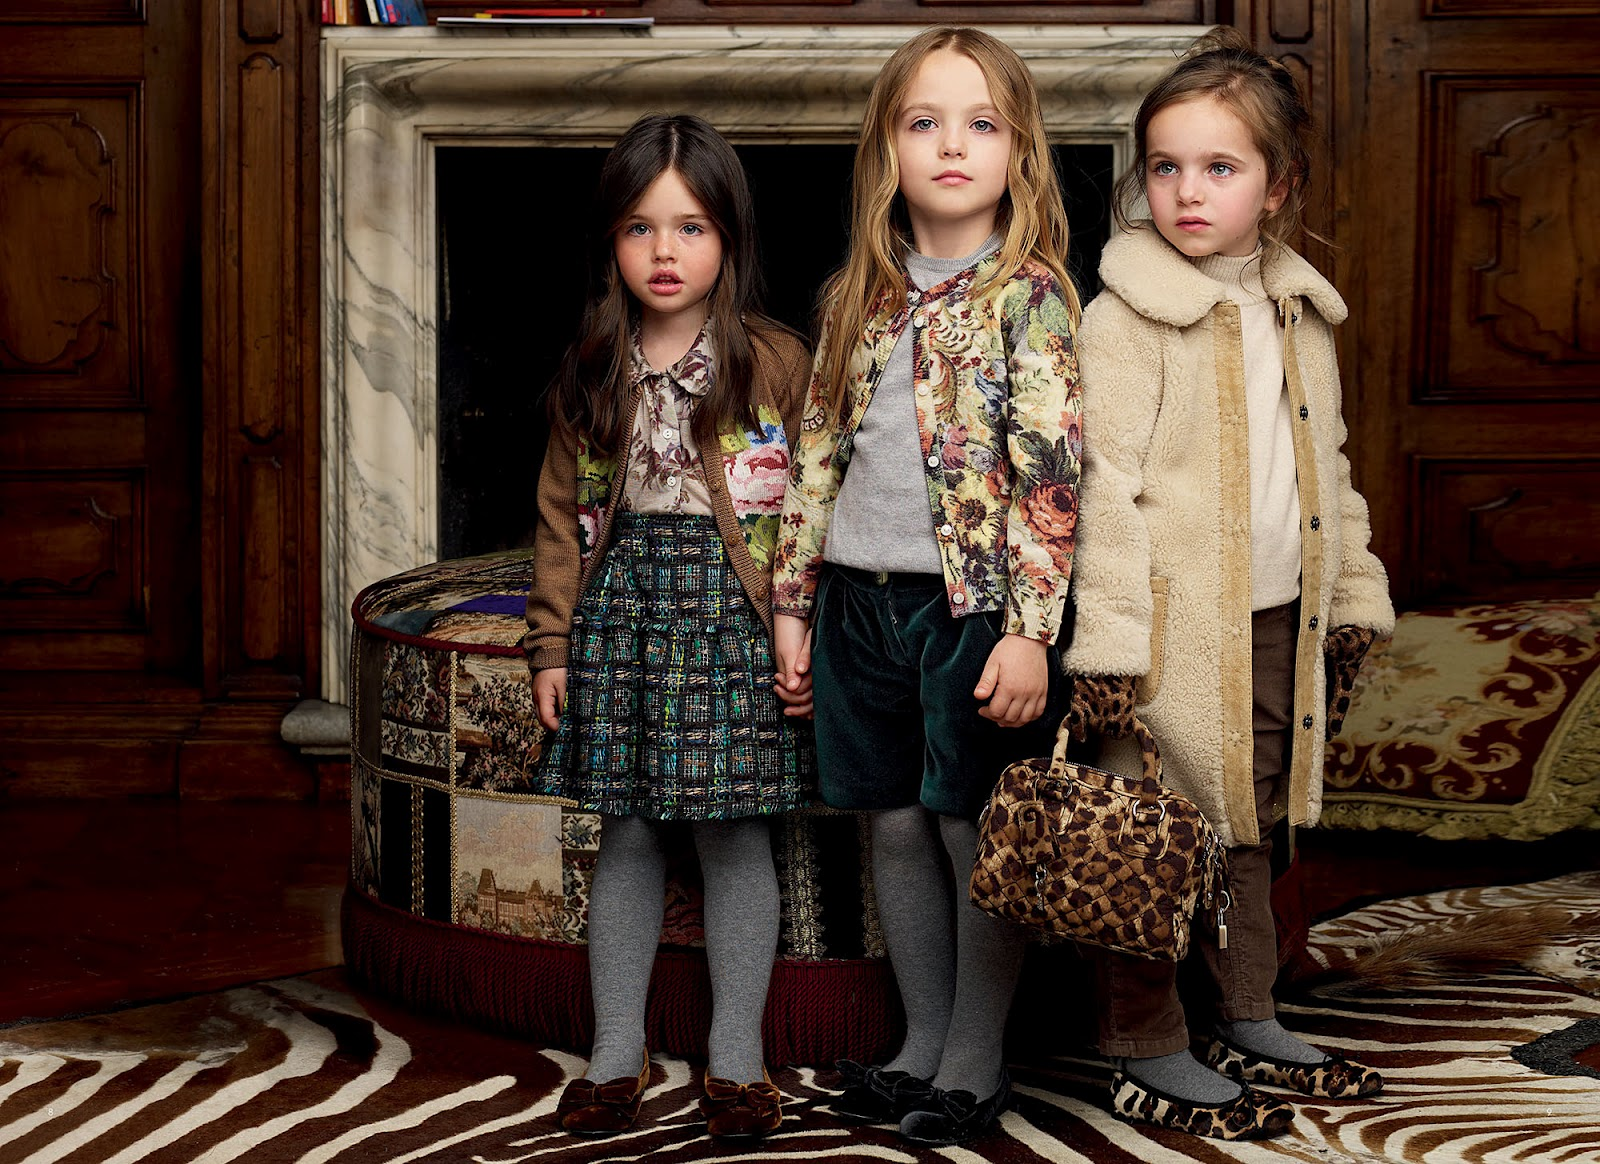 And gabanna s new kids line is the clothes are absolutely adorable